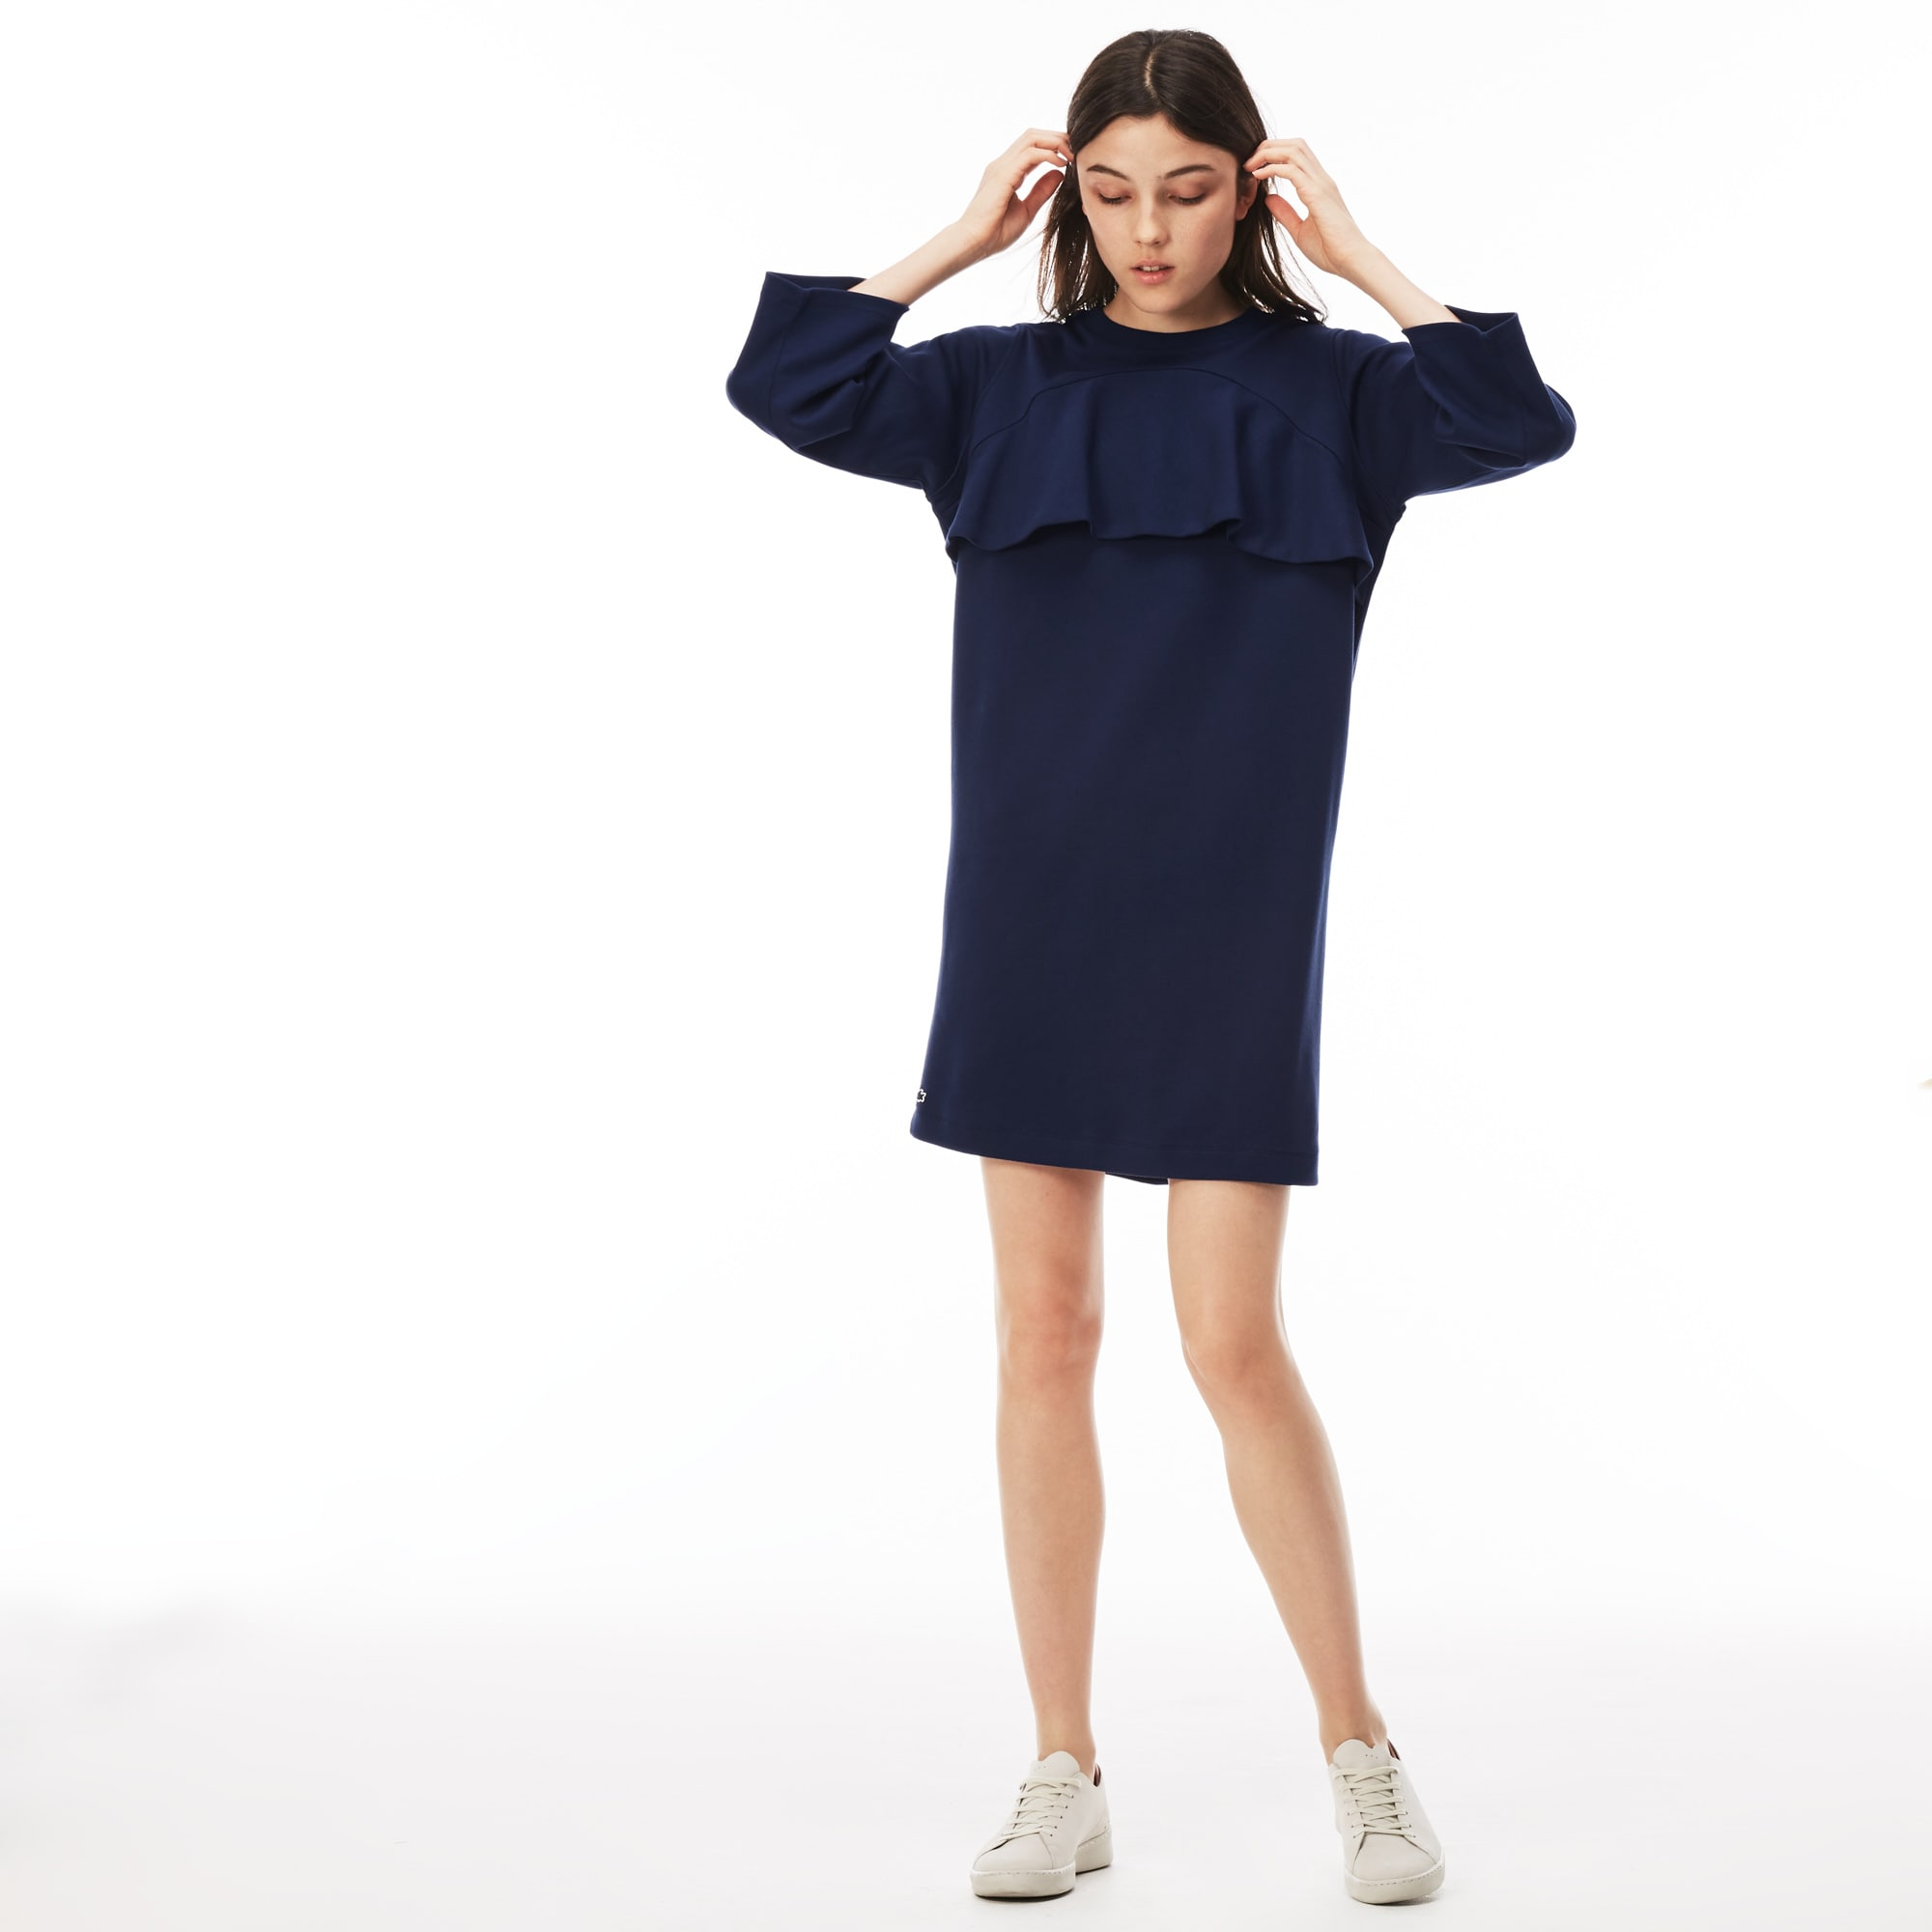 Women's Lacoste LIVE Flounced Interlock Sweatshirt Dress